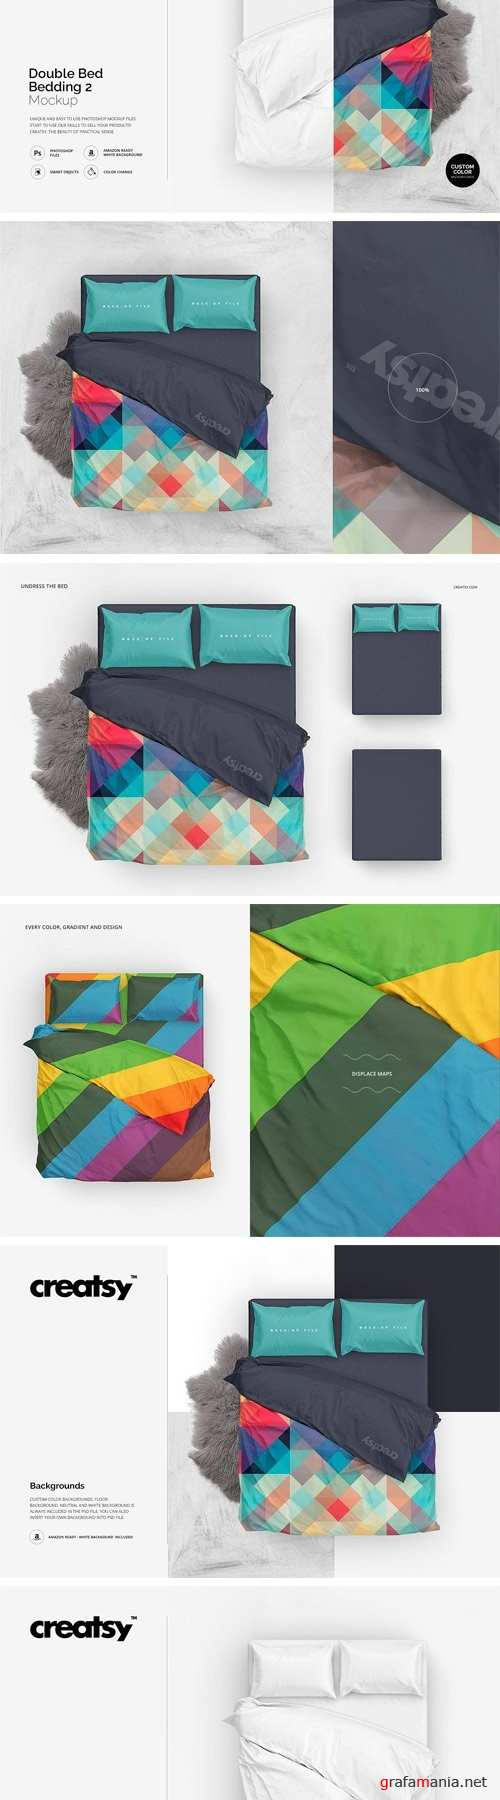 Double Bed 2 Bedding Mockup 1604957